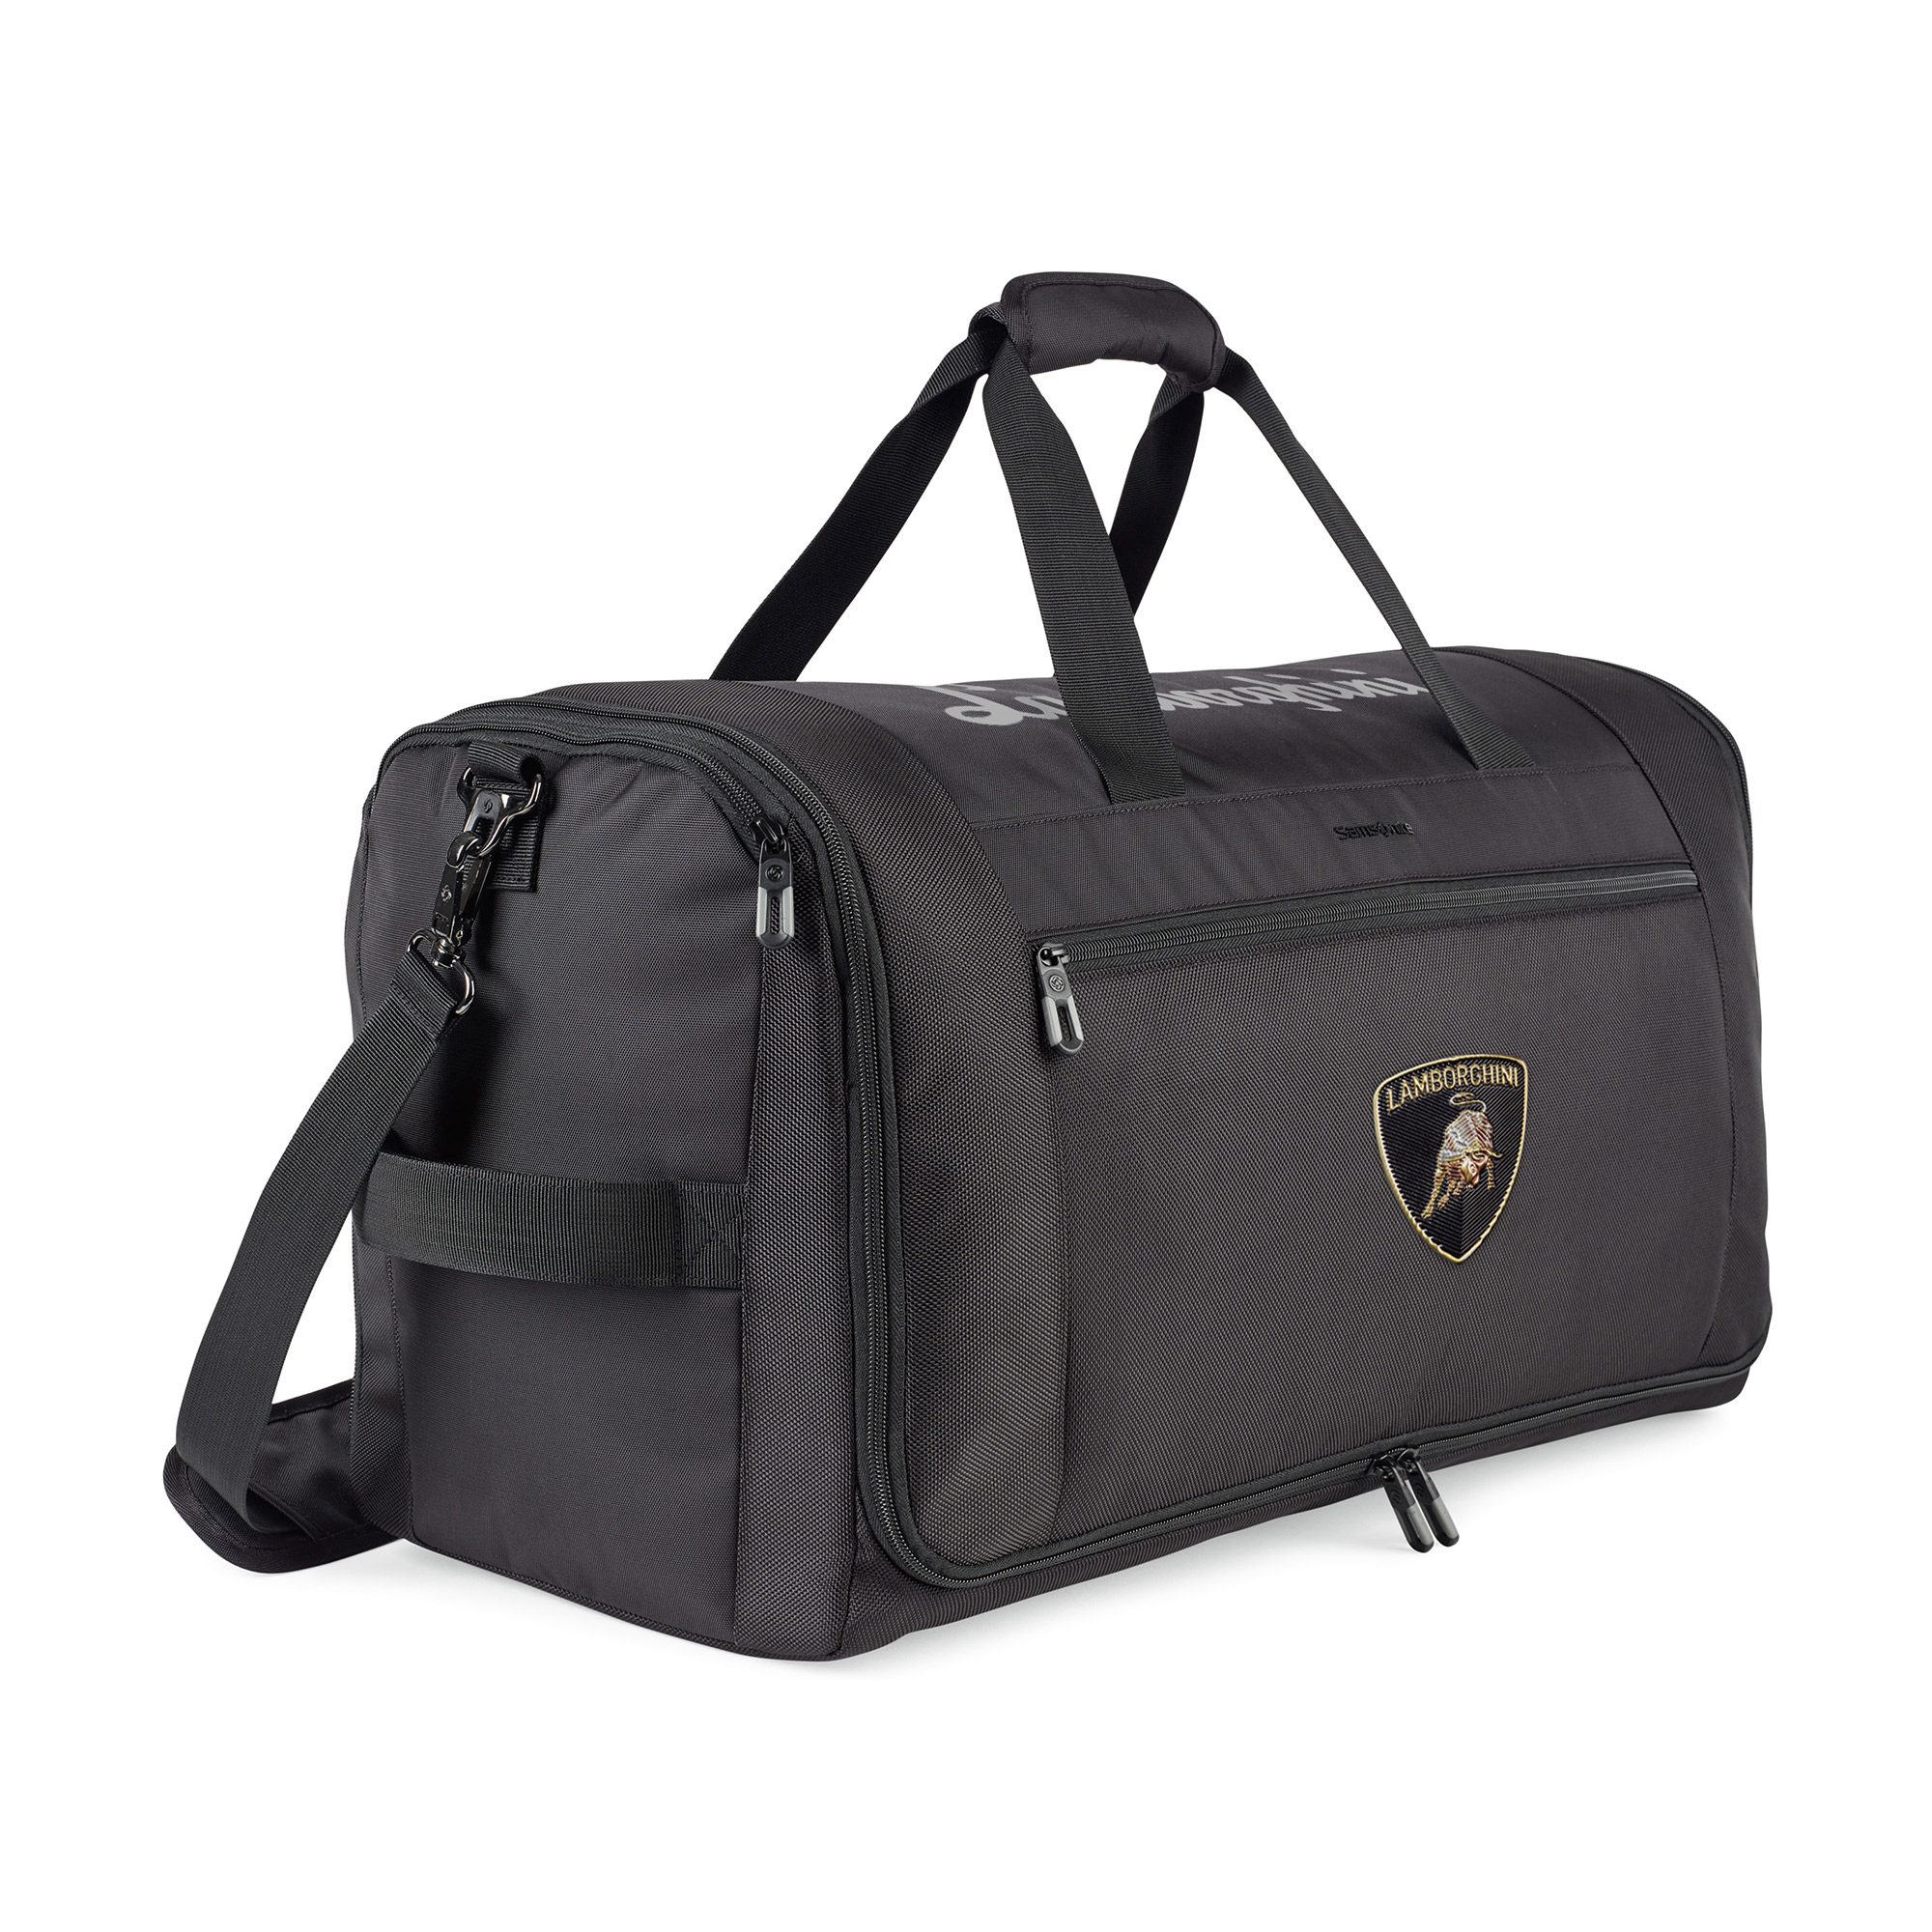 When completely zipper closed, this bag functions as a carry-on sized duffel.